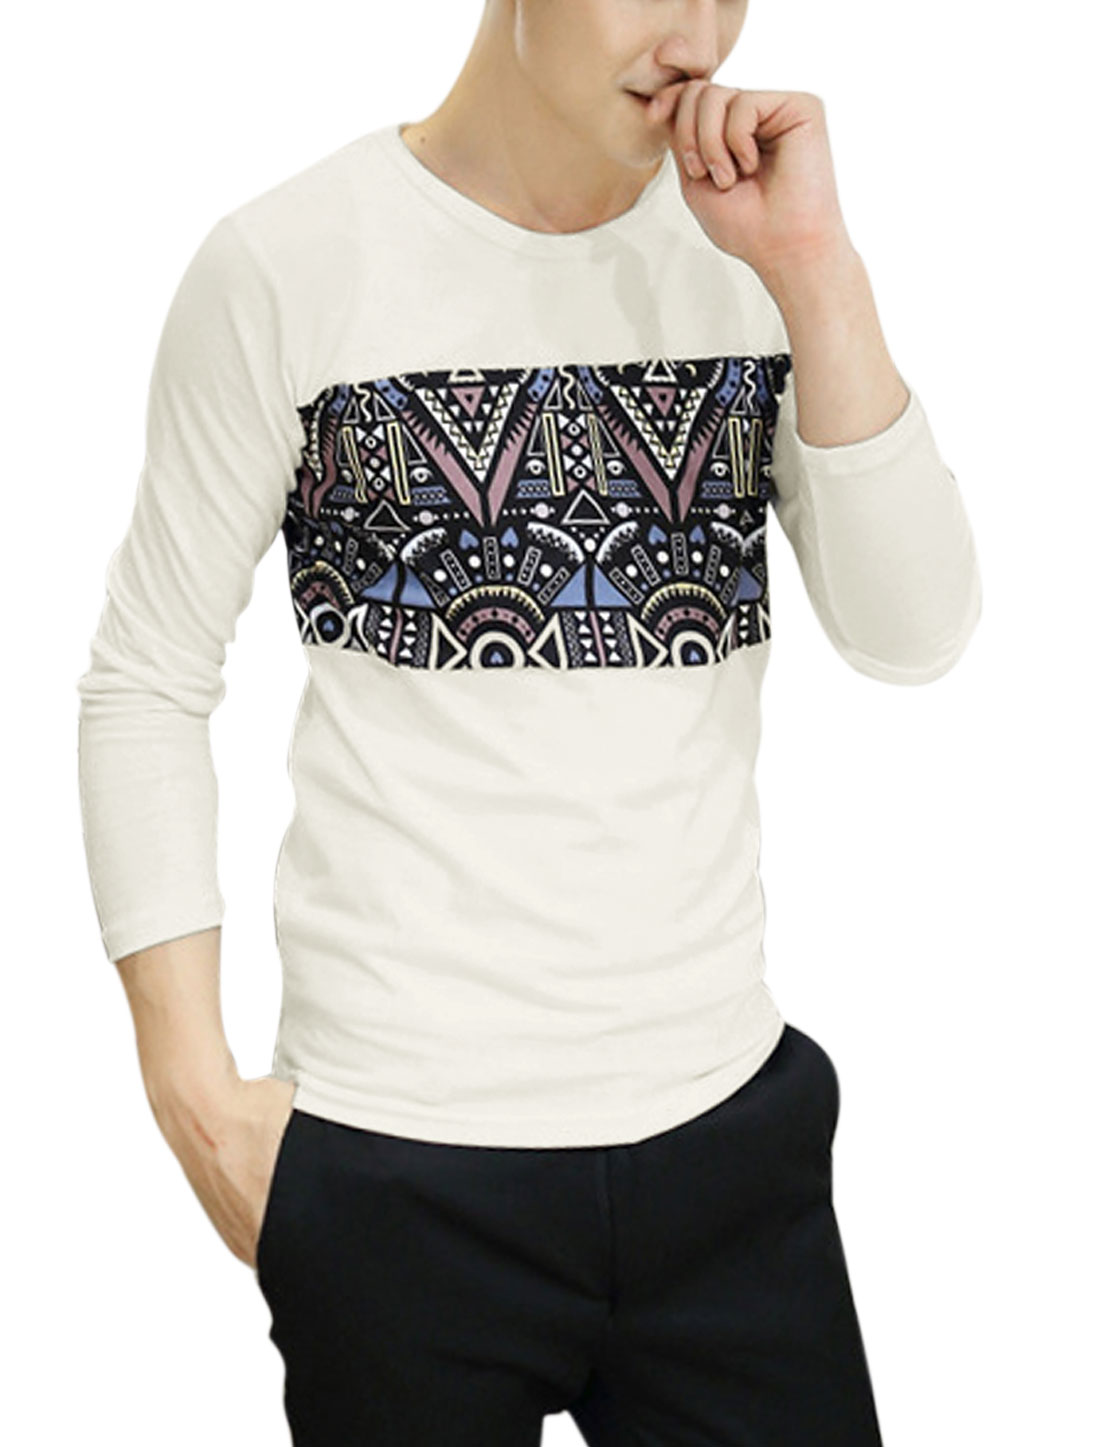 Man Black Round Neck Long Sleeves Pullover Slim Fit Novelty Prints Shirt S